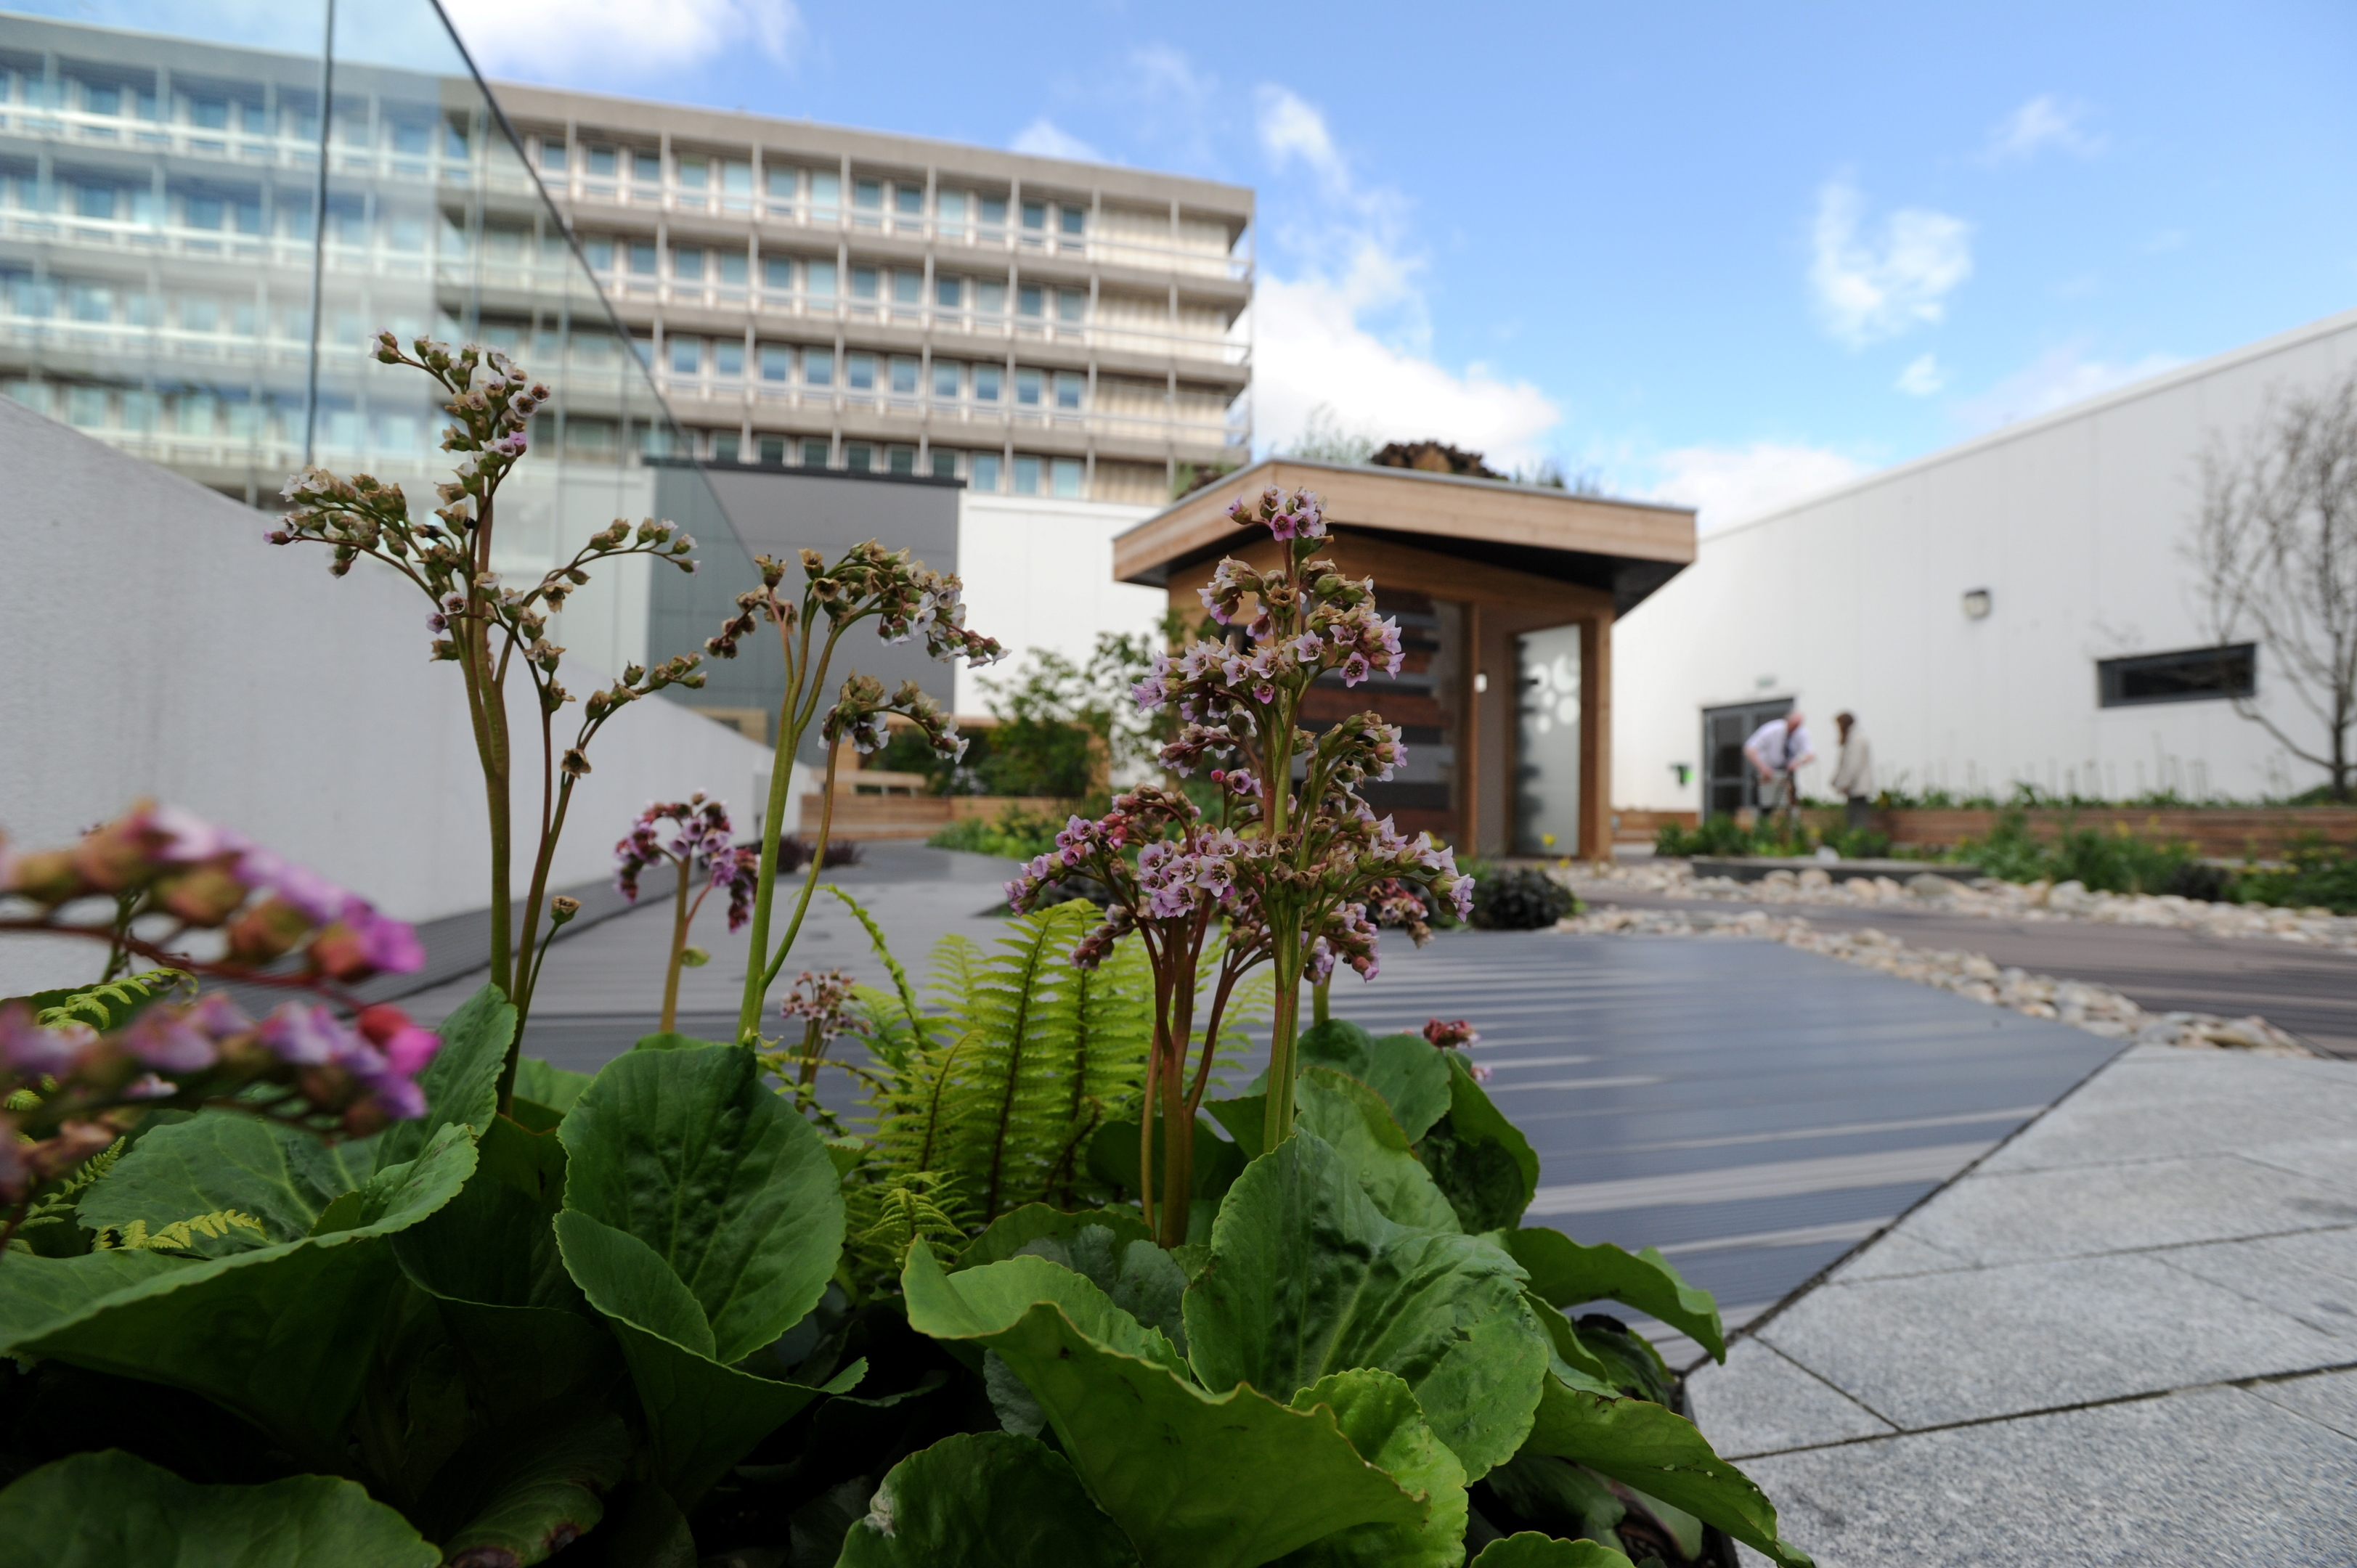 The Robertson Family Roof Garden at Aberdeen Royal Infirmary.